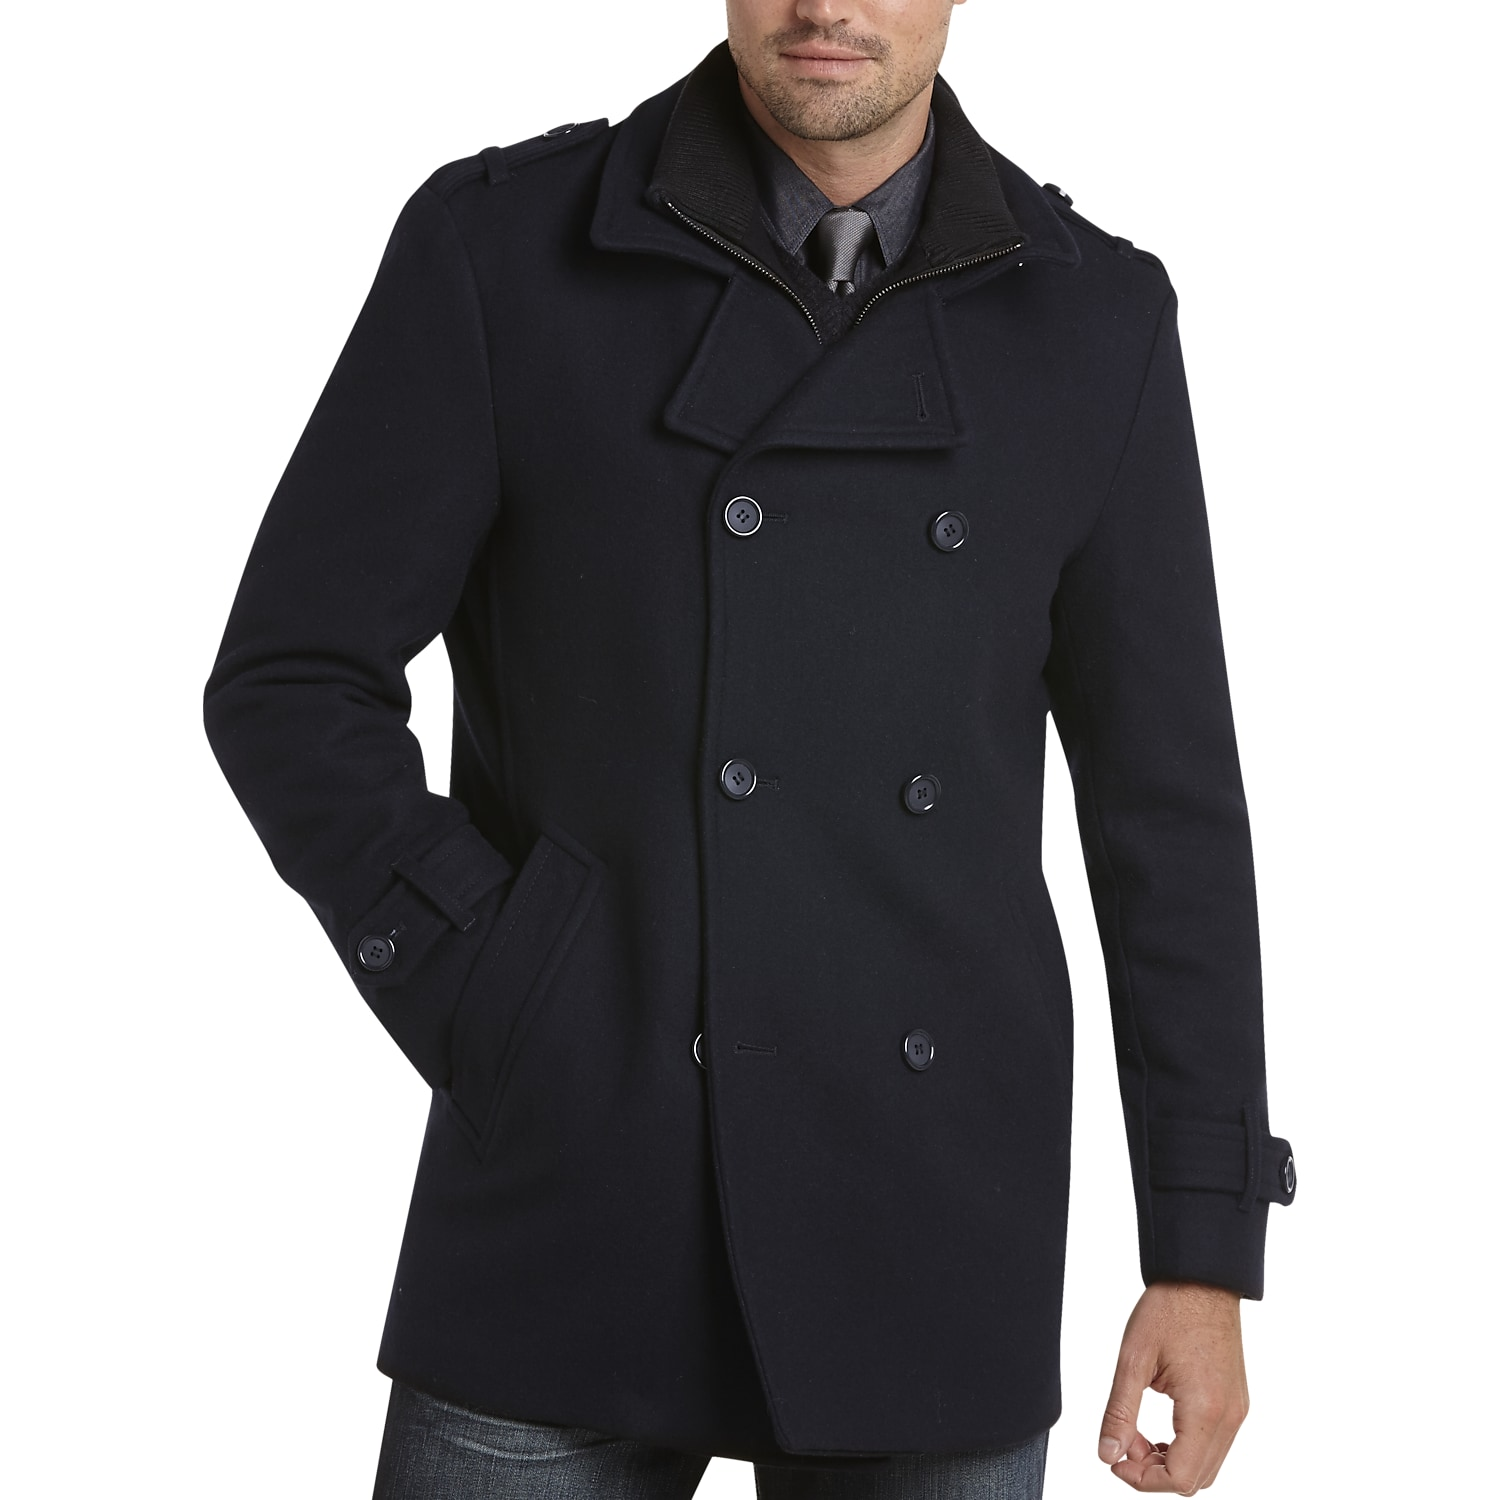 Egara Dark Navy Modern Fit Wool Peacoat - Men's Peacoats | Men's ...